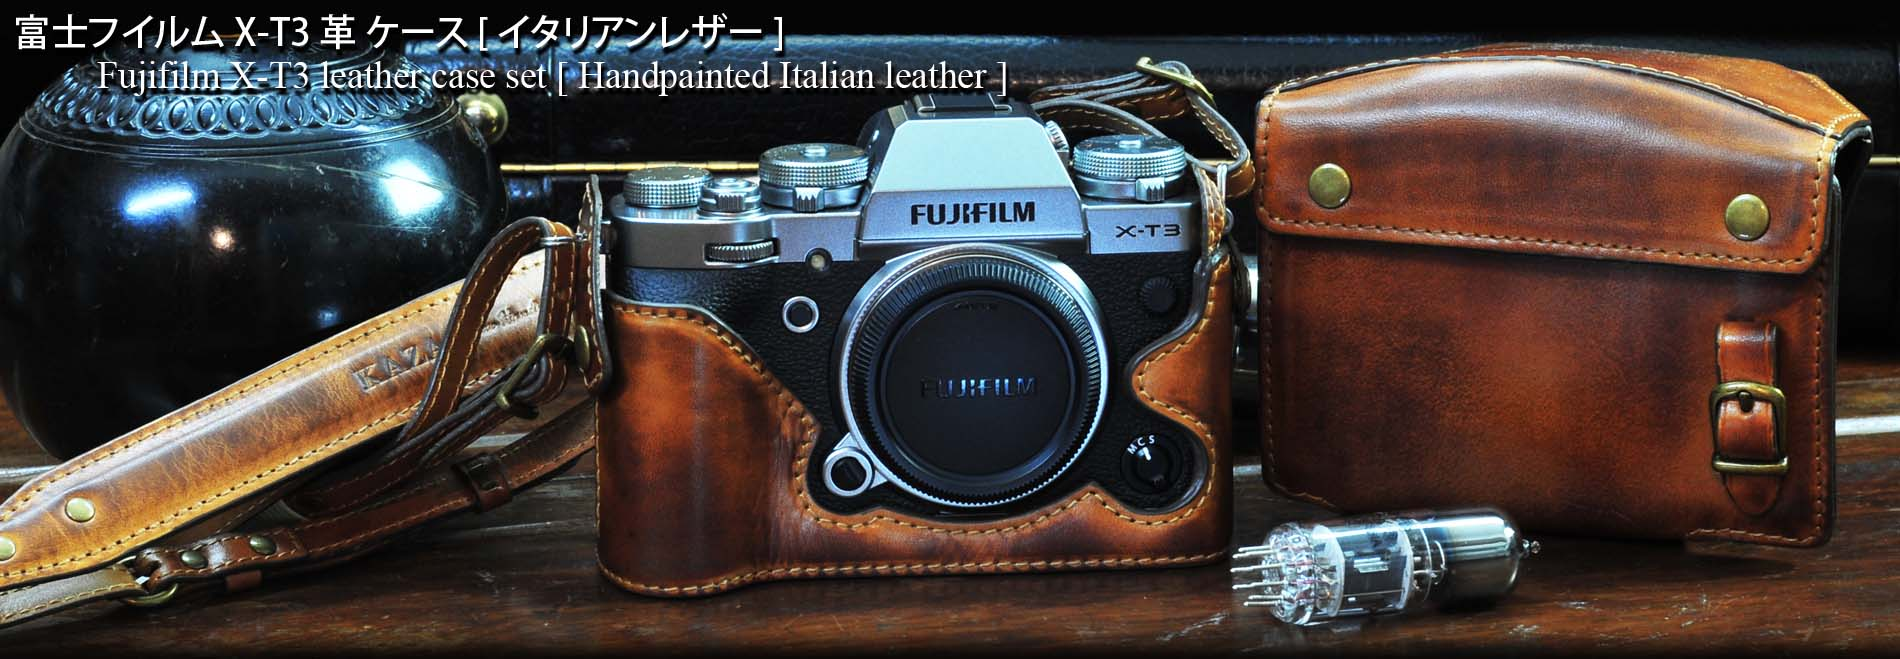 XT3 leather half case,X-T3 leather half case,XT3 相機皮套,XT3 革のケース